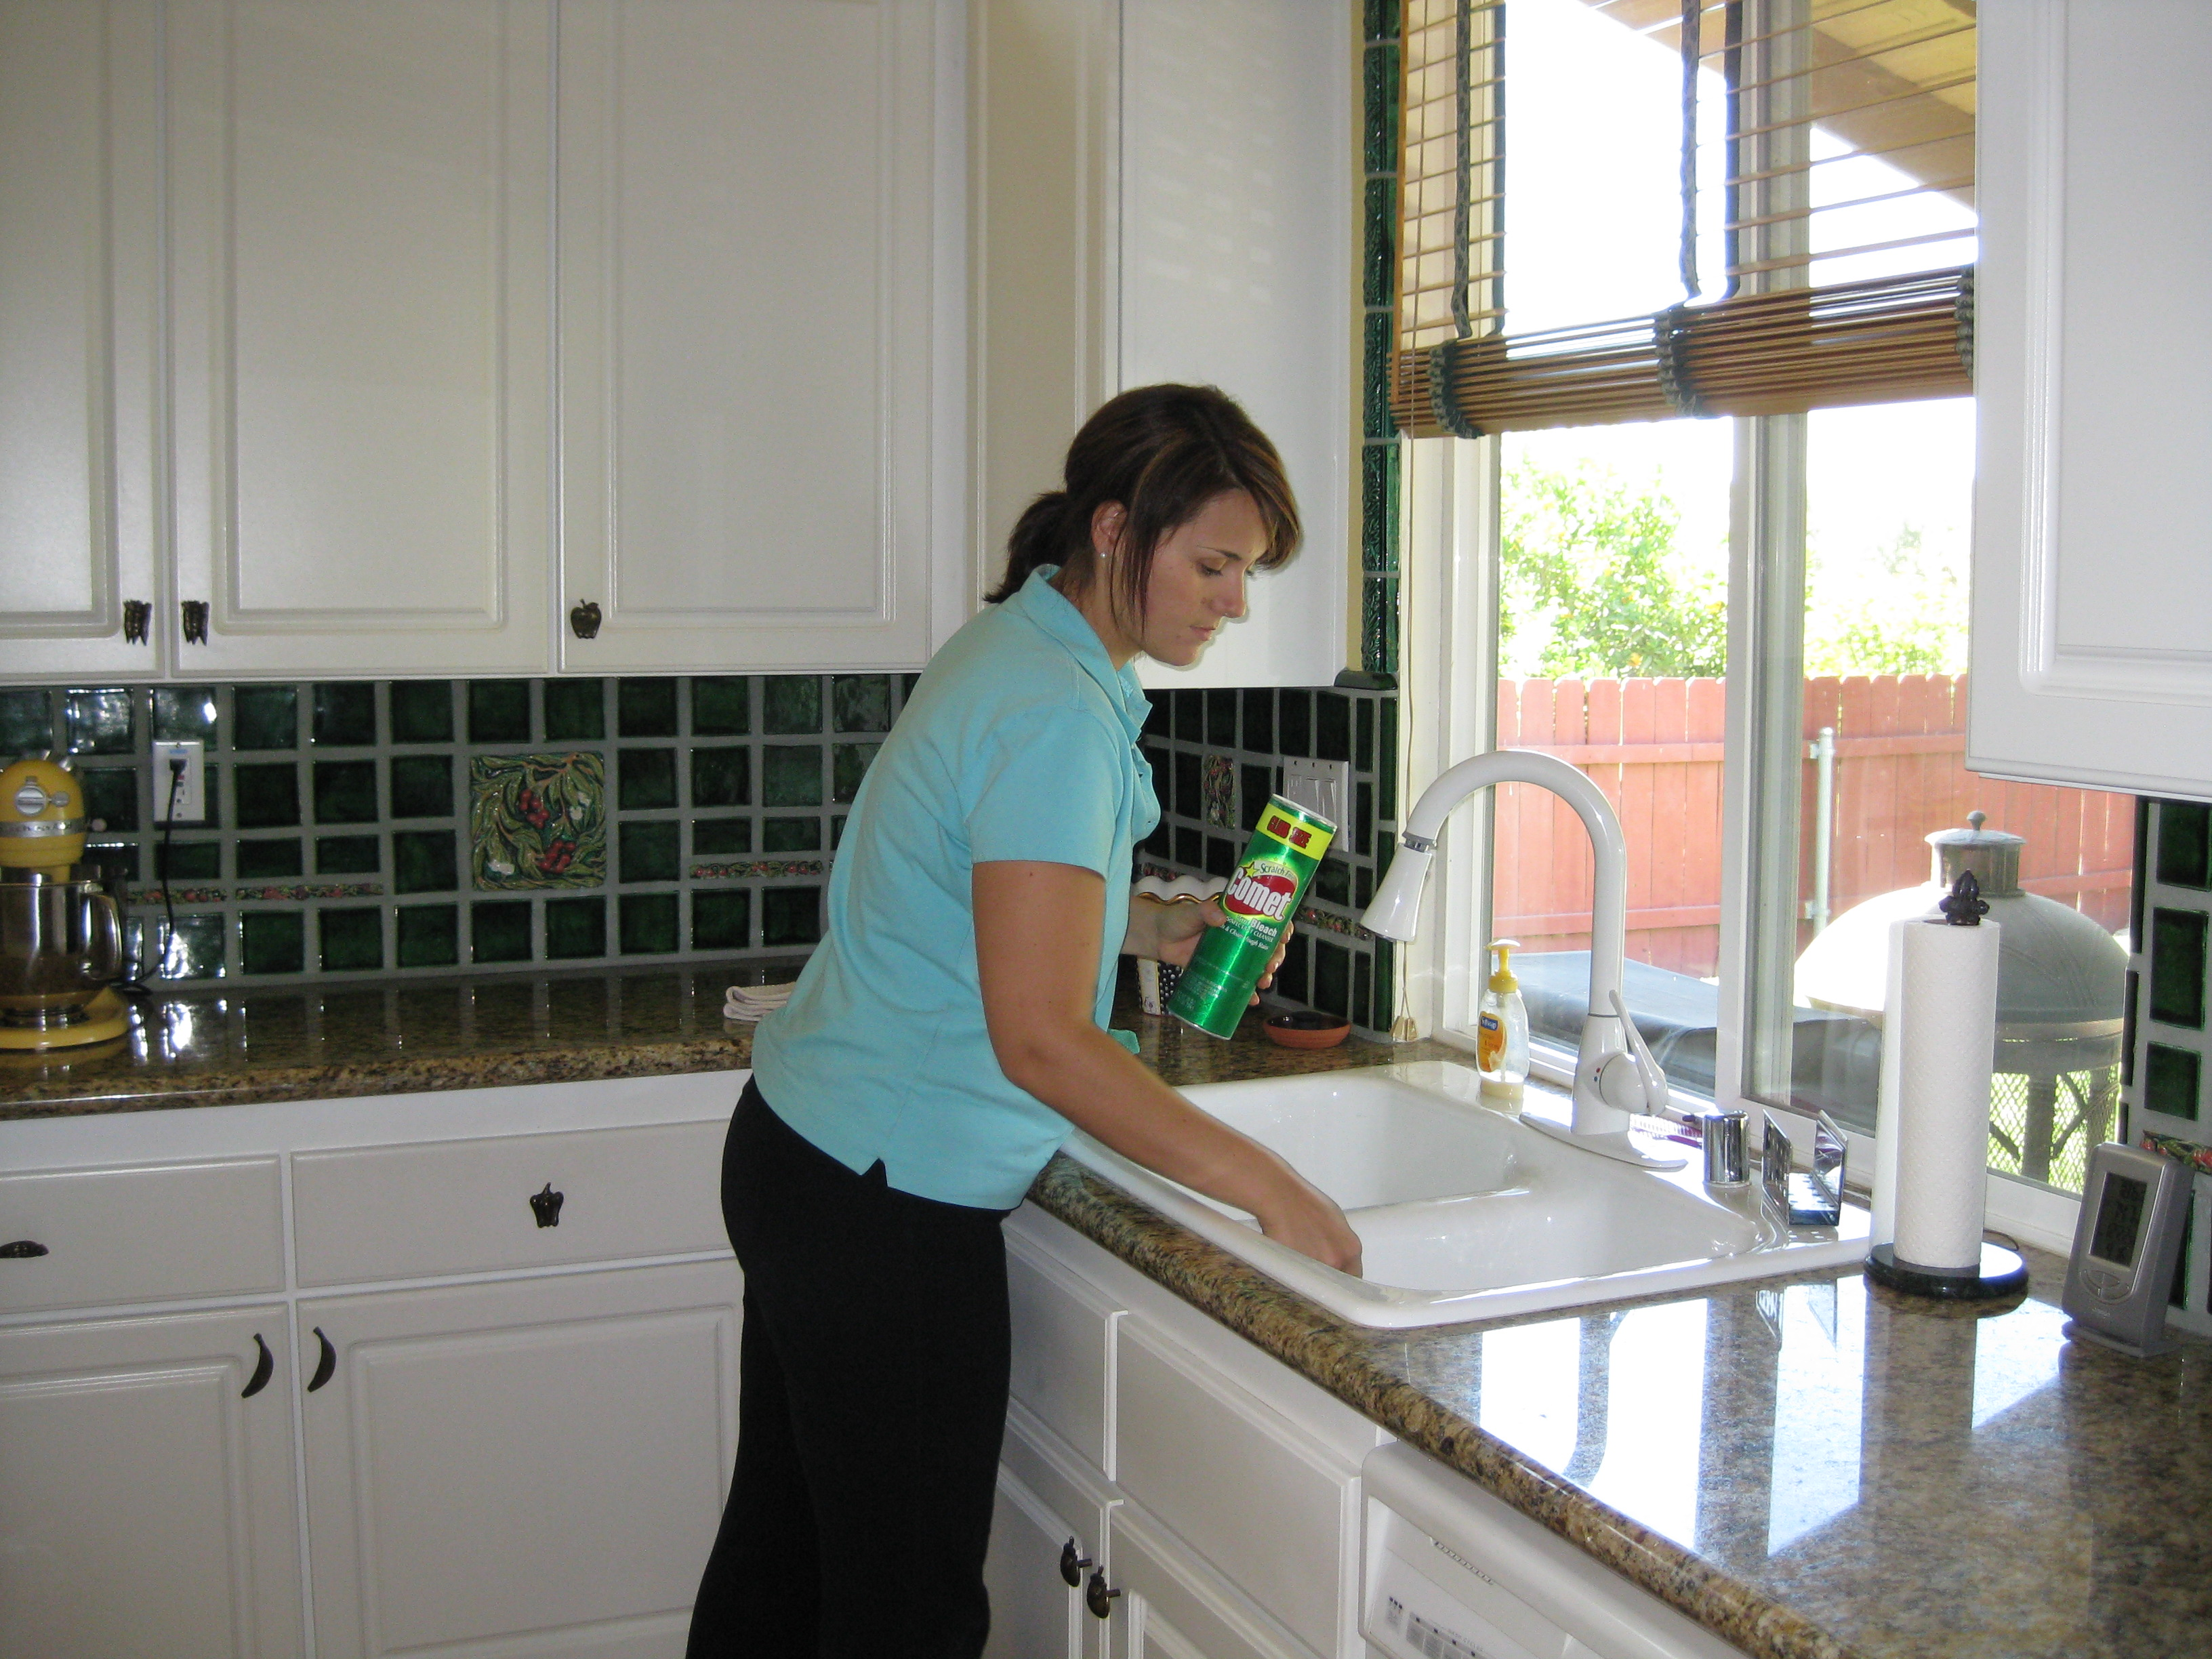 My Maids House Cleaning Service image 8